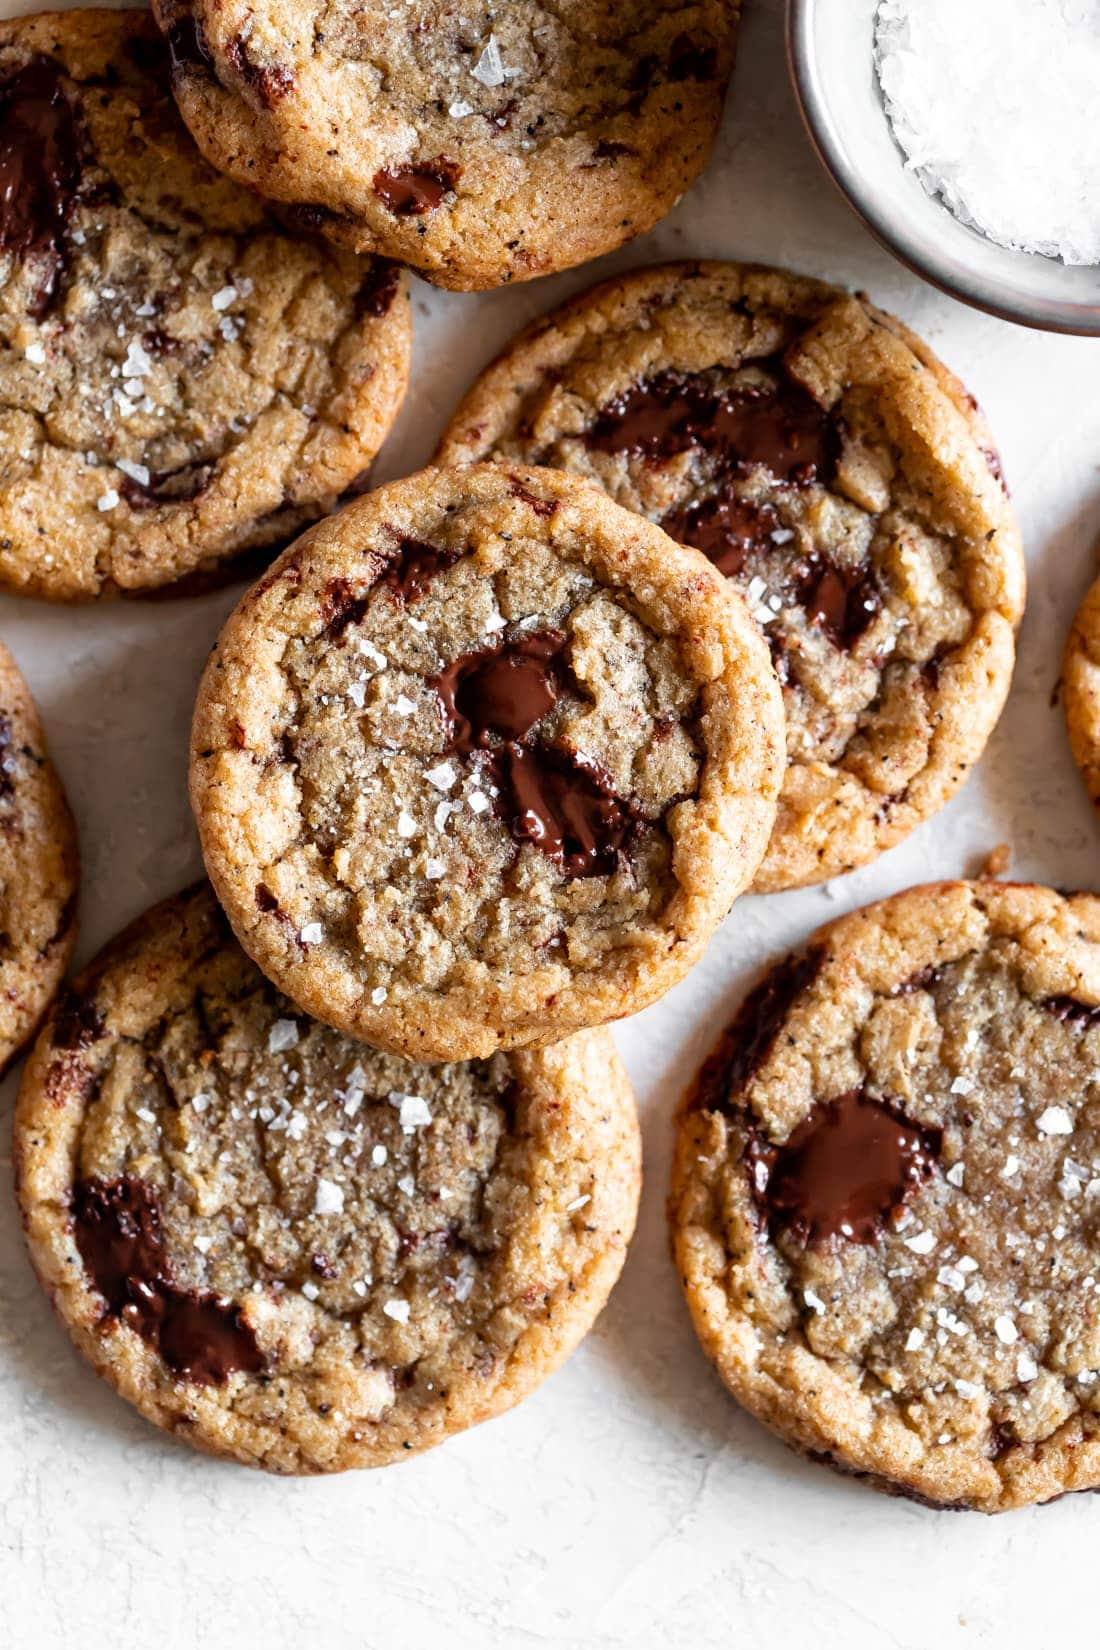 chocolate chip cookies made with brown butter, espresso powder, and chopped dark chocolate